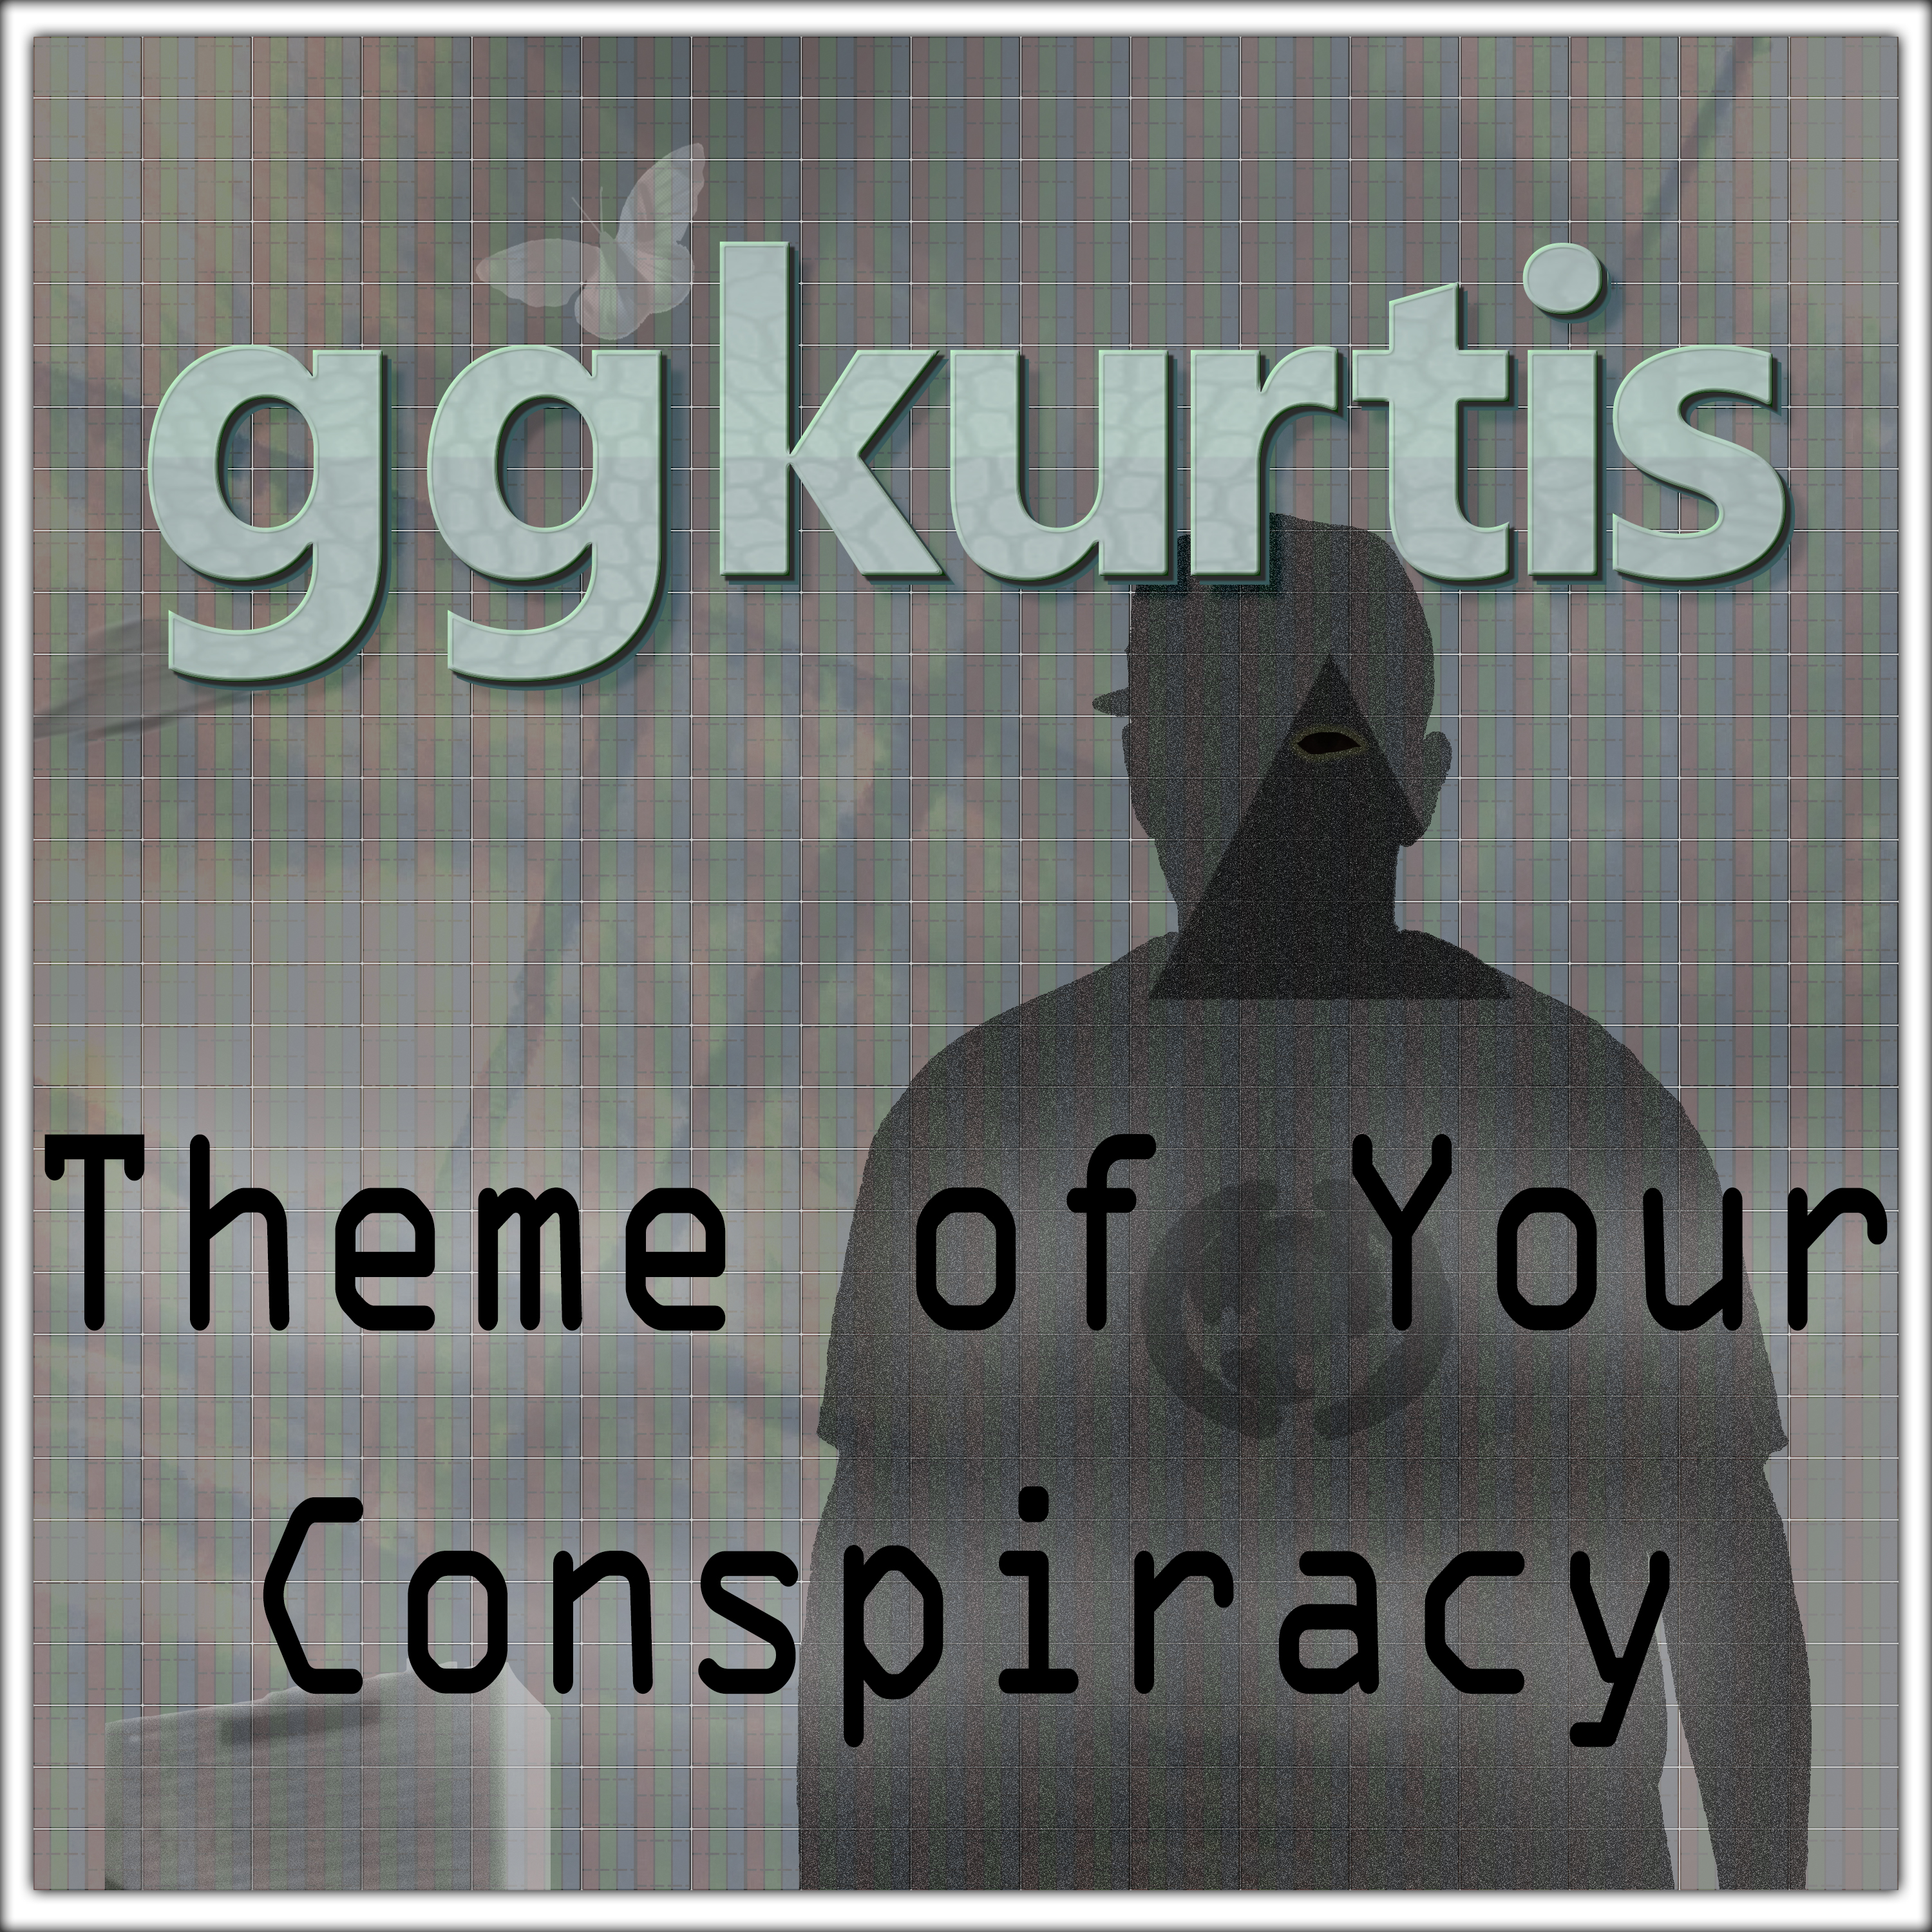 Theme of Your Conspiracy